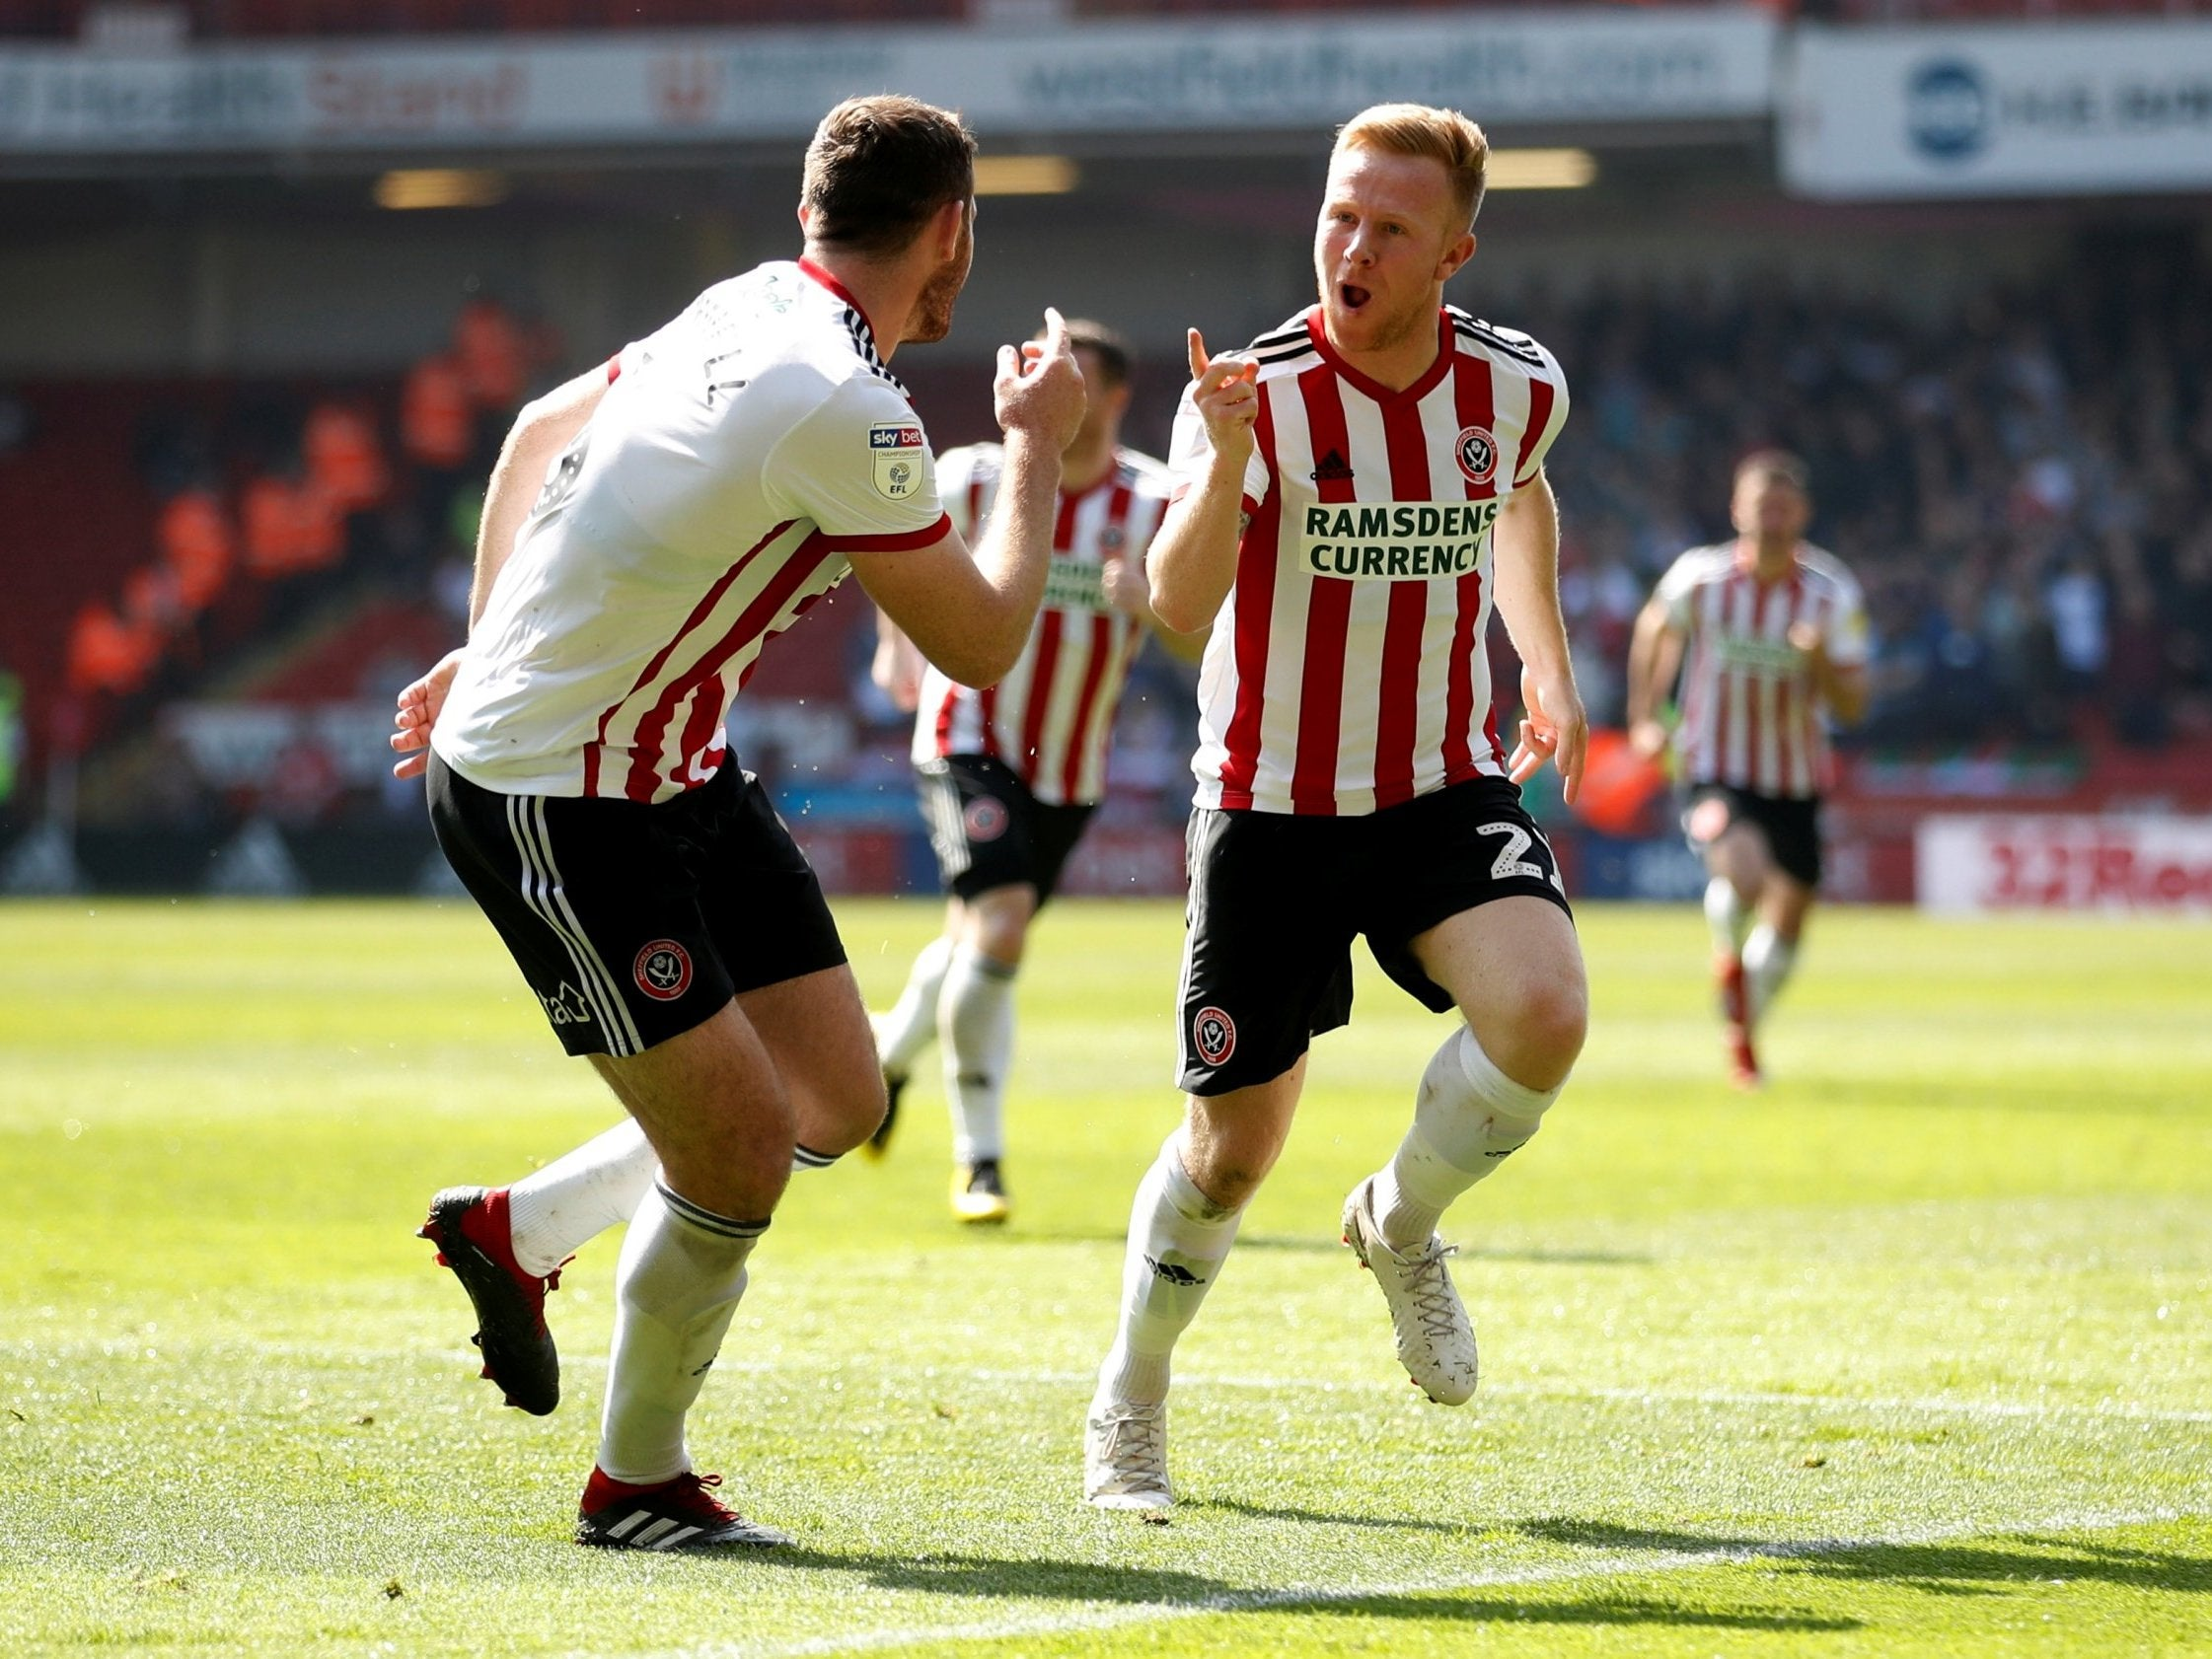 Sheffield United vs Nottingham Forest result: Blades keep up pressure on Leeds with crunch win